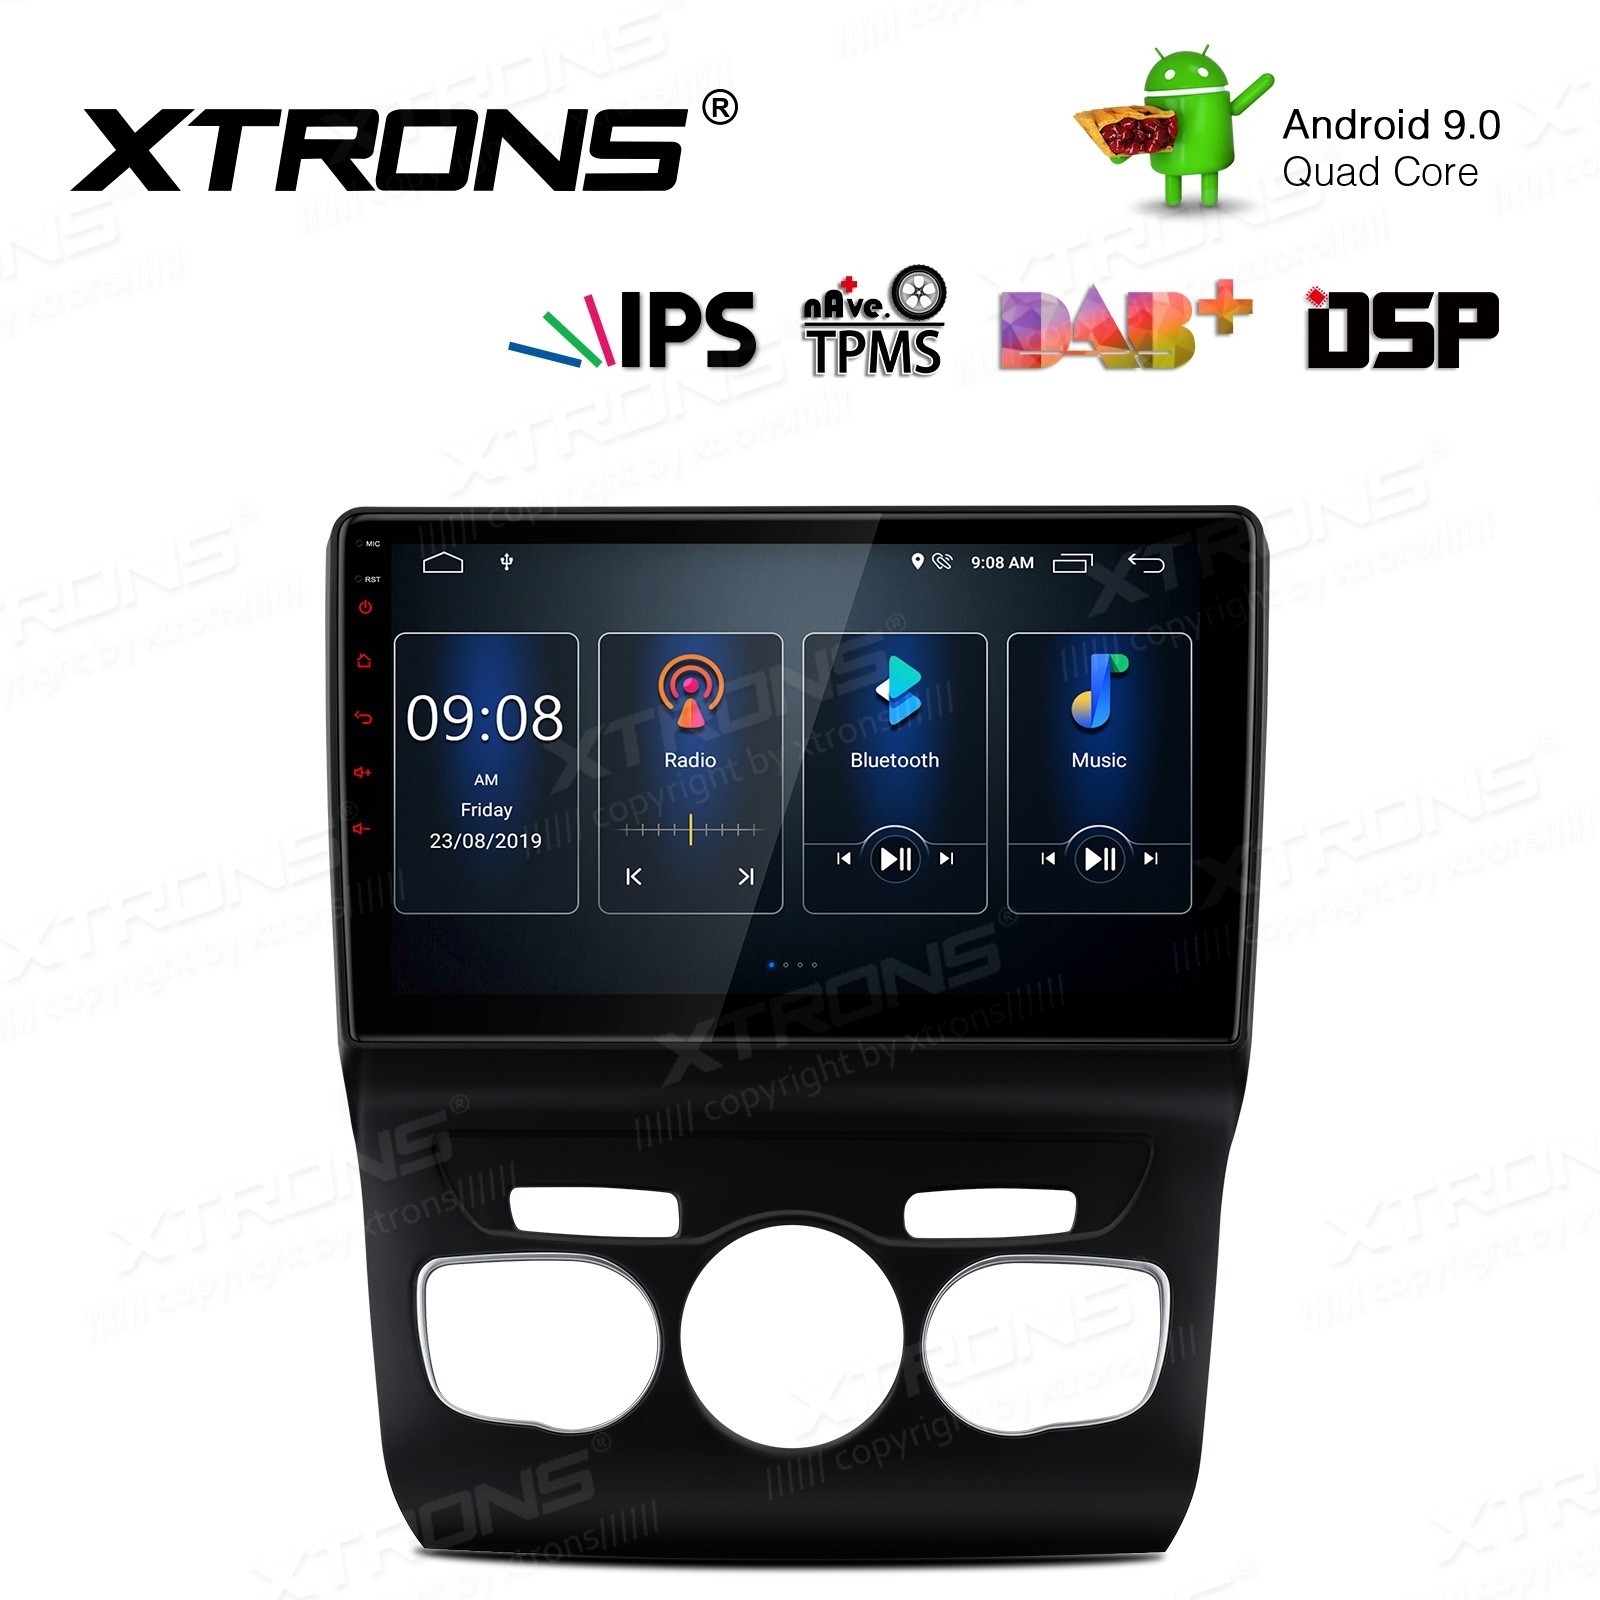 10.1 inch IPS Screen Android 9.0 Navigation Multimedia Player with Built-in DSP Custom Fit for Citroen